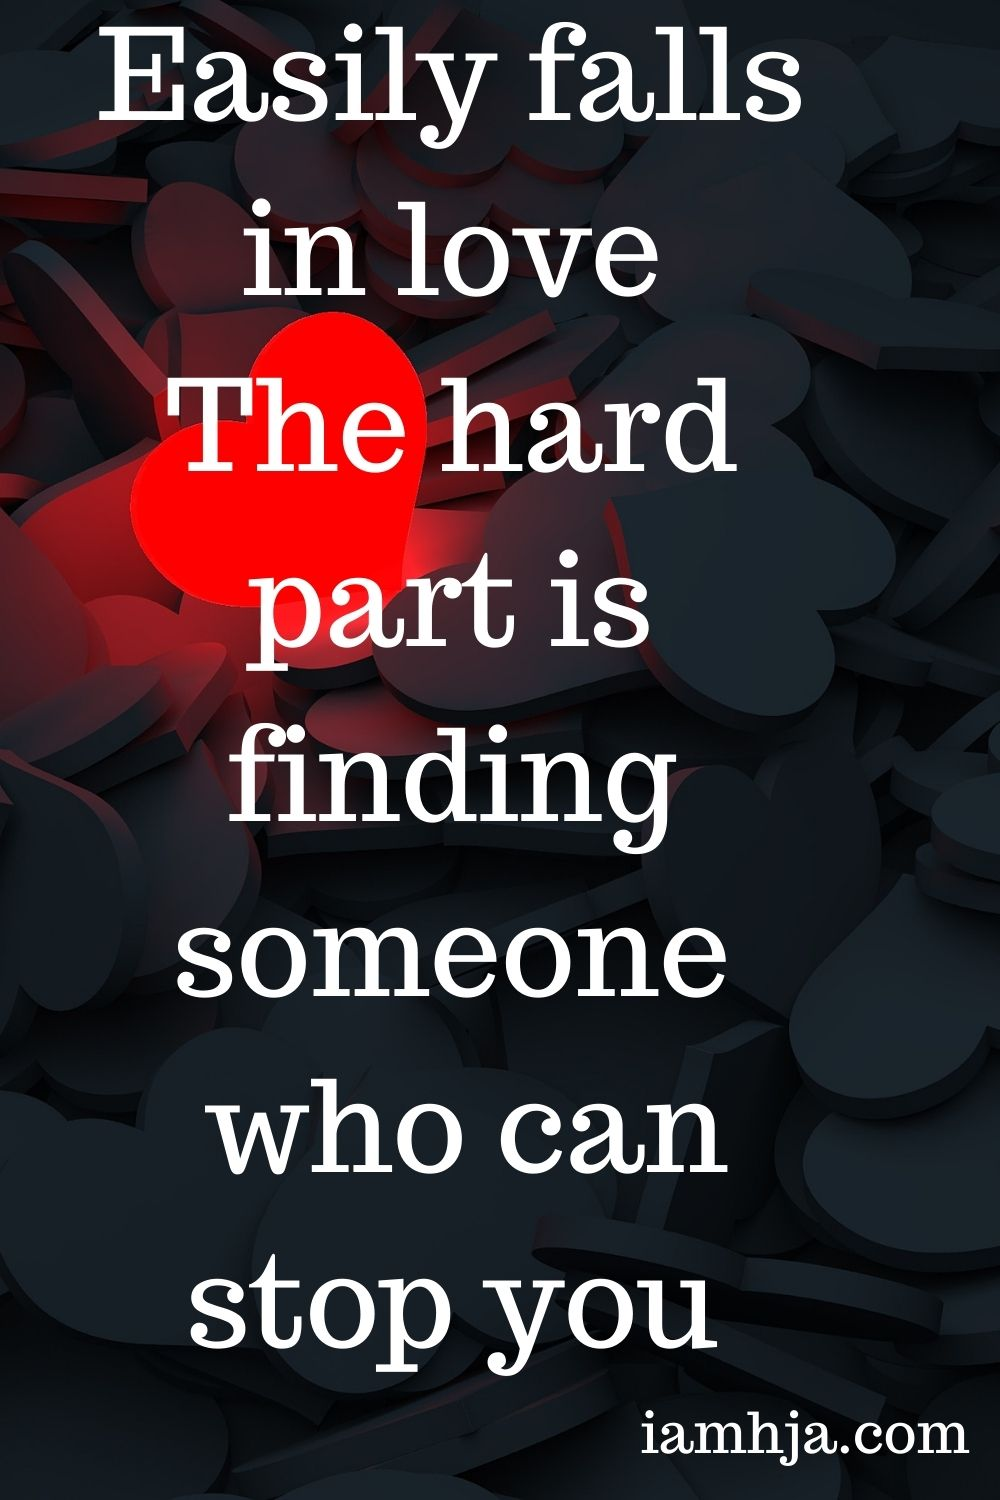 Easily falls in love The hard part is finding someone who can stop you.